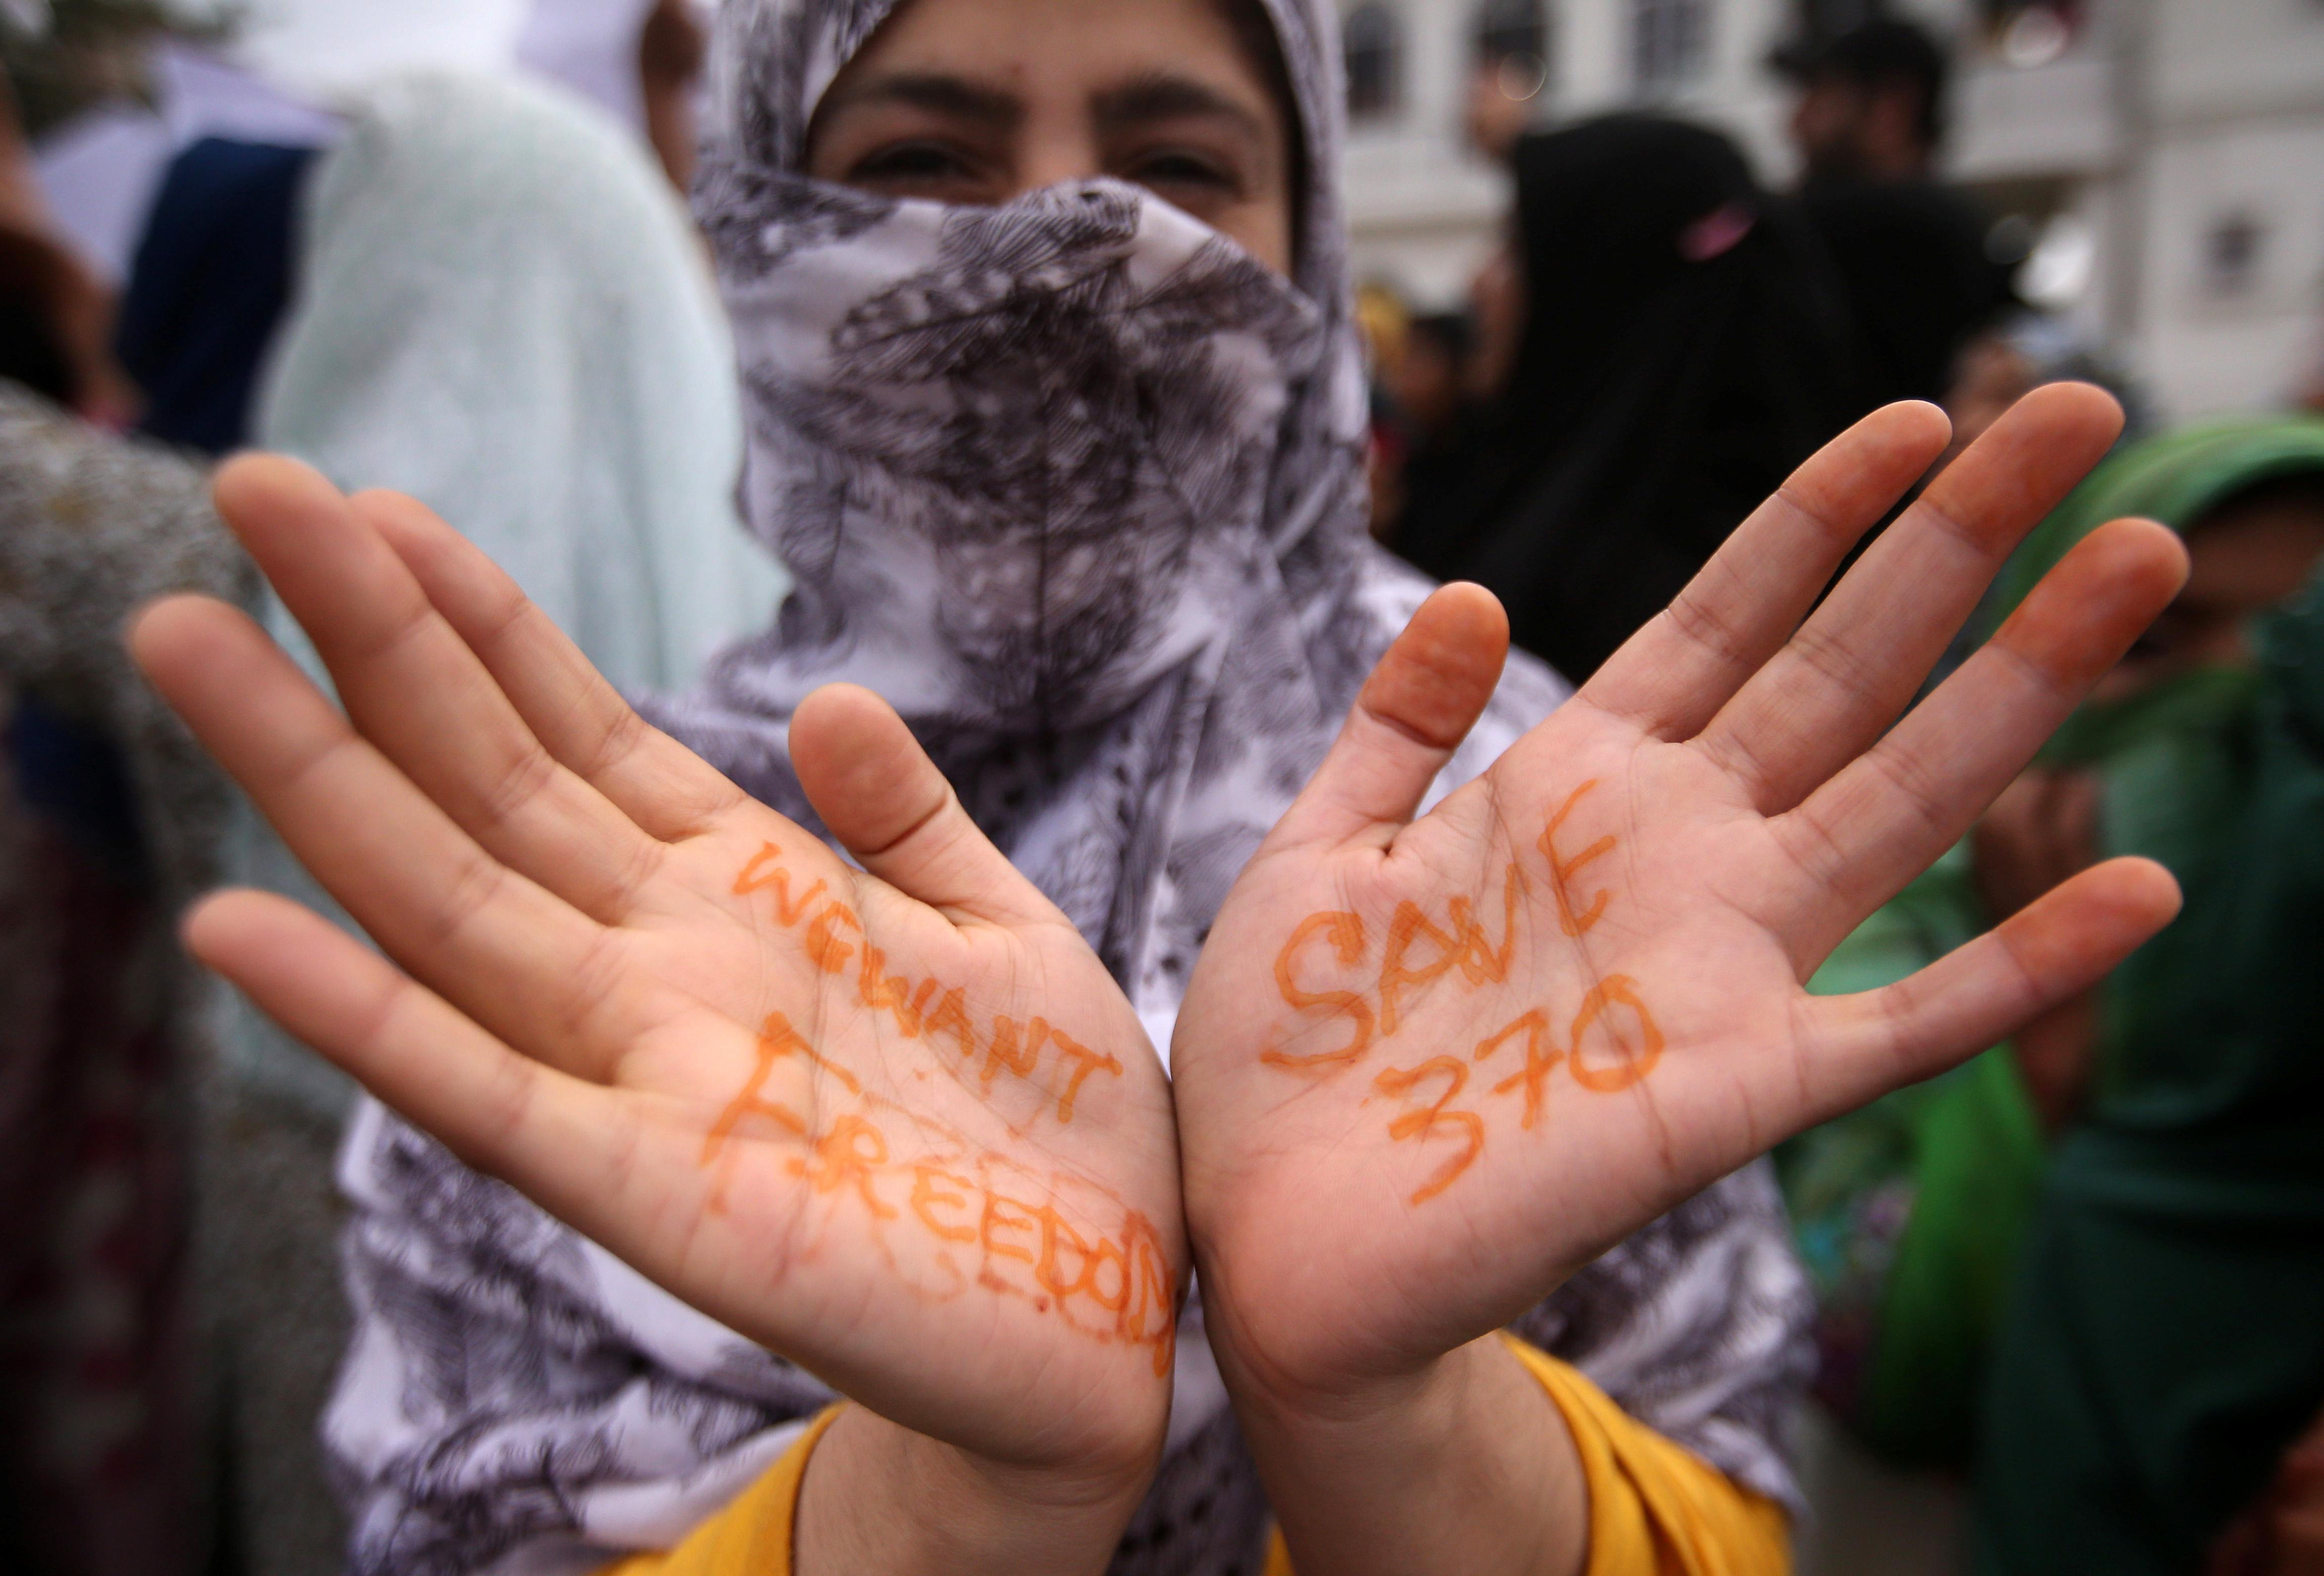 A Kashmiri woman shows her hand with a message as others shout slogans during a protest after the scrapping of the special constitutional status for Kashmir by the Indian government, in Srinagar, August 11, 2019. REUTERS/Danish Siddiqui